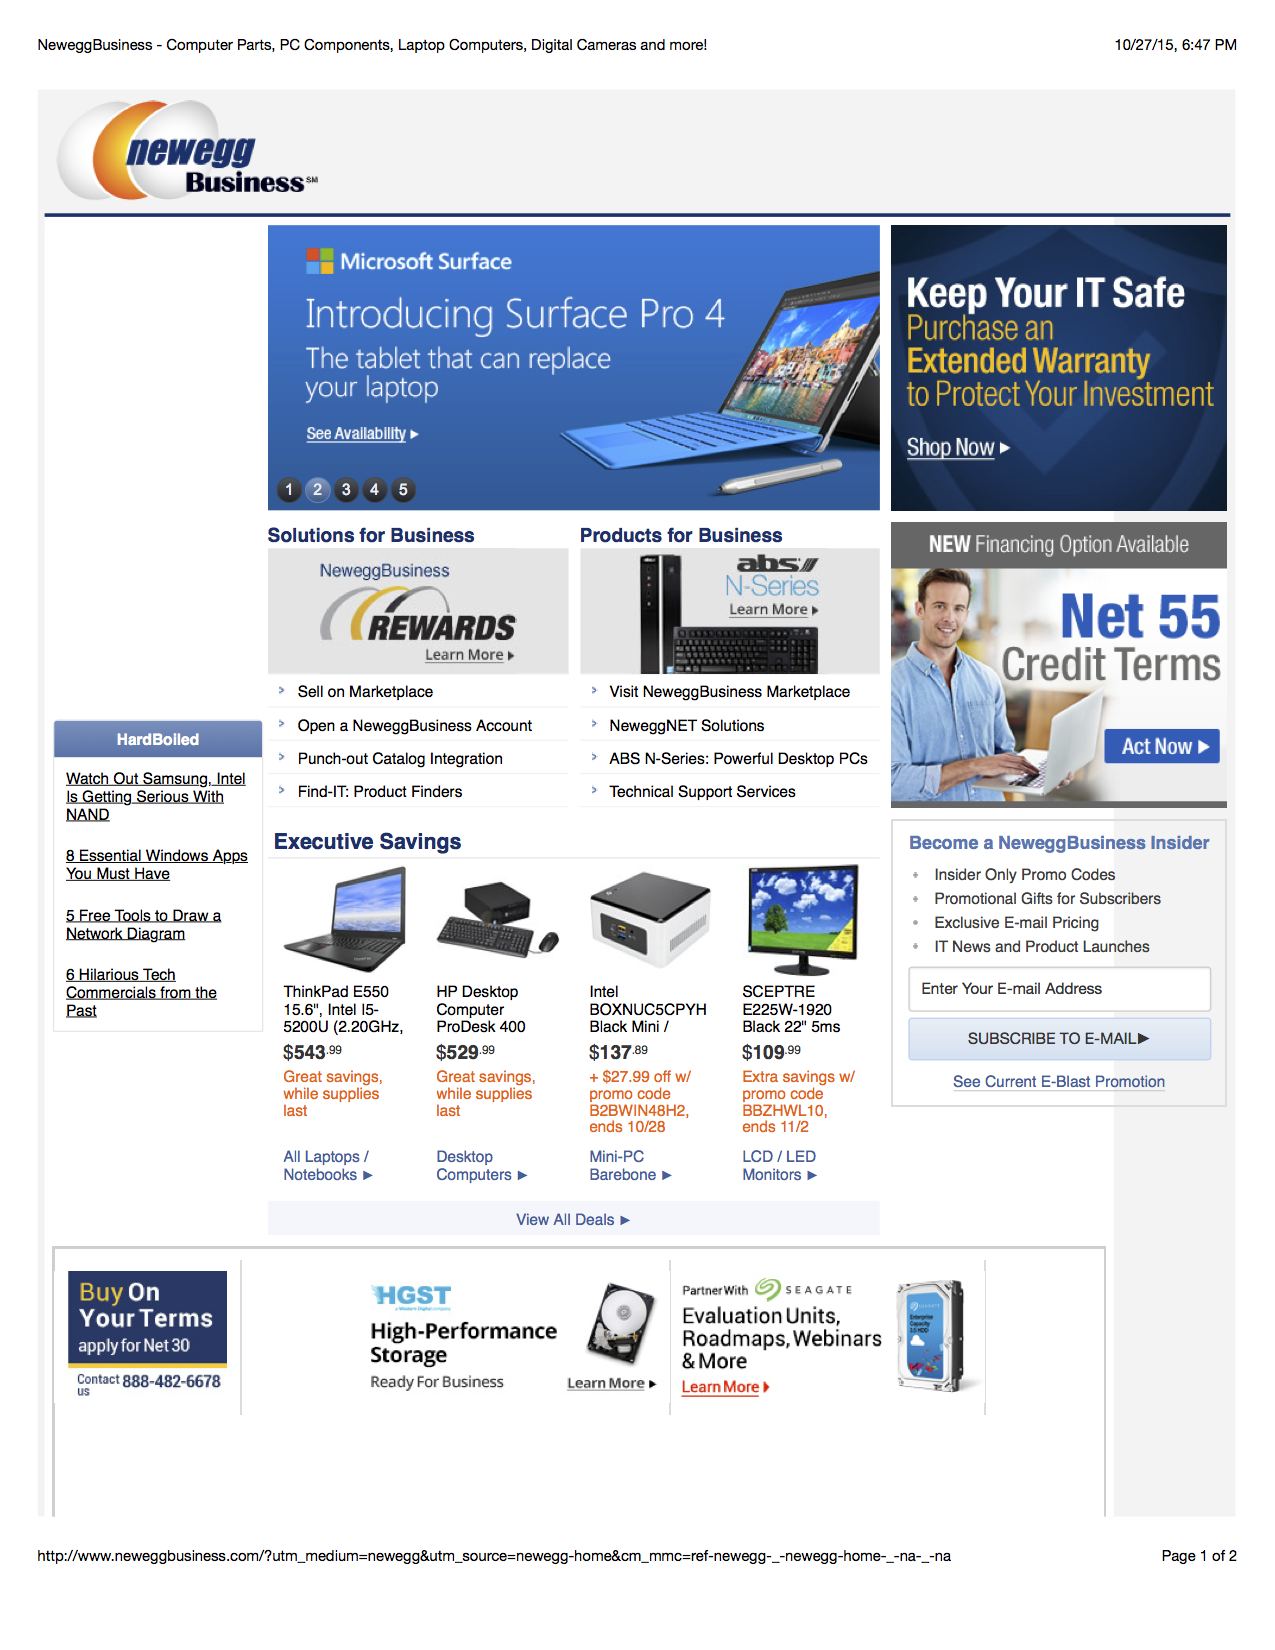 Just Got Approved For Newegg Business Net55 Terms Myfico Parts Of A Laptop Computer Diagram Neweggbusiness Pc Components Computers Digital Cameras And More